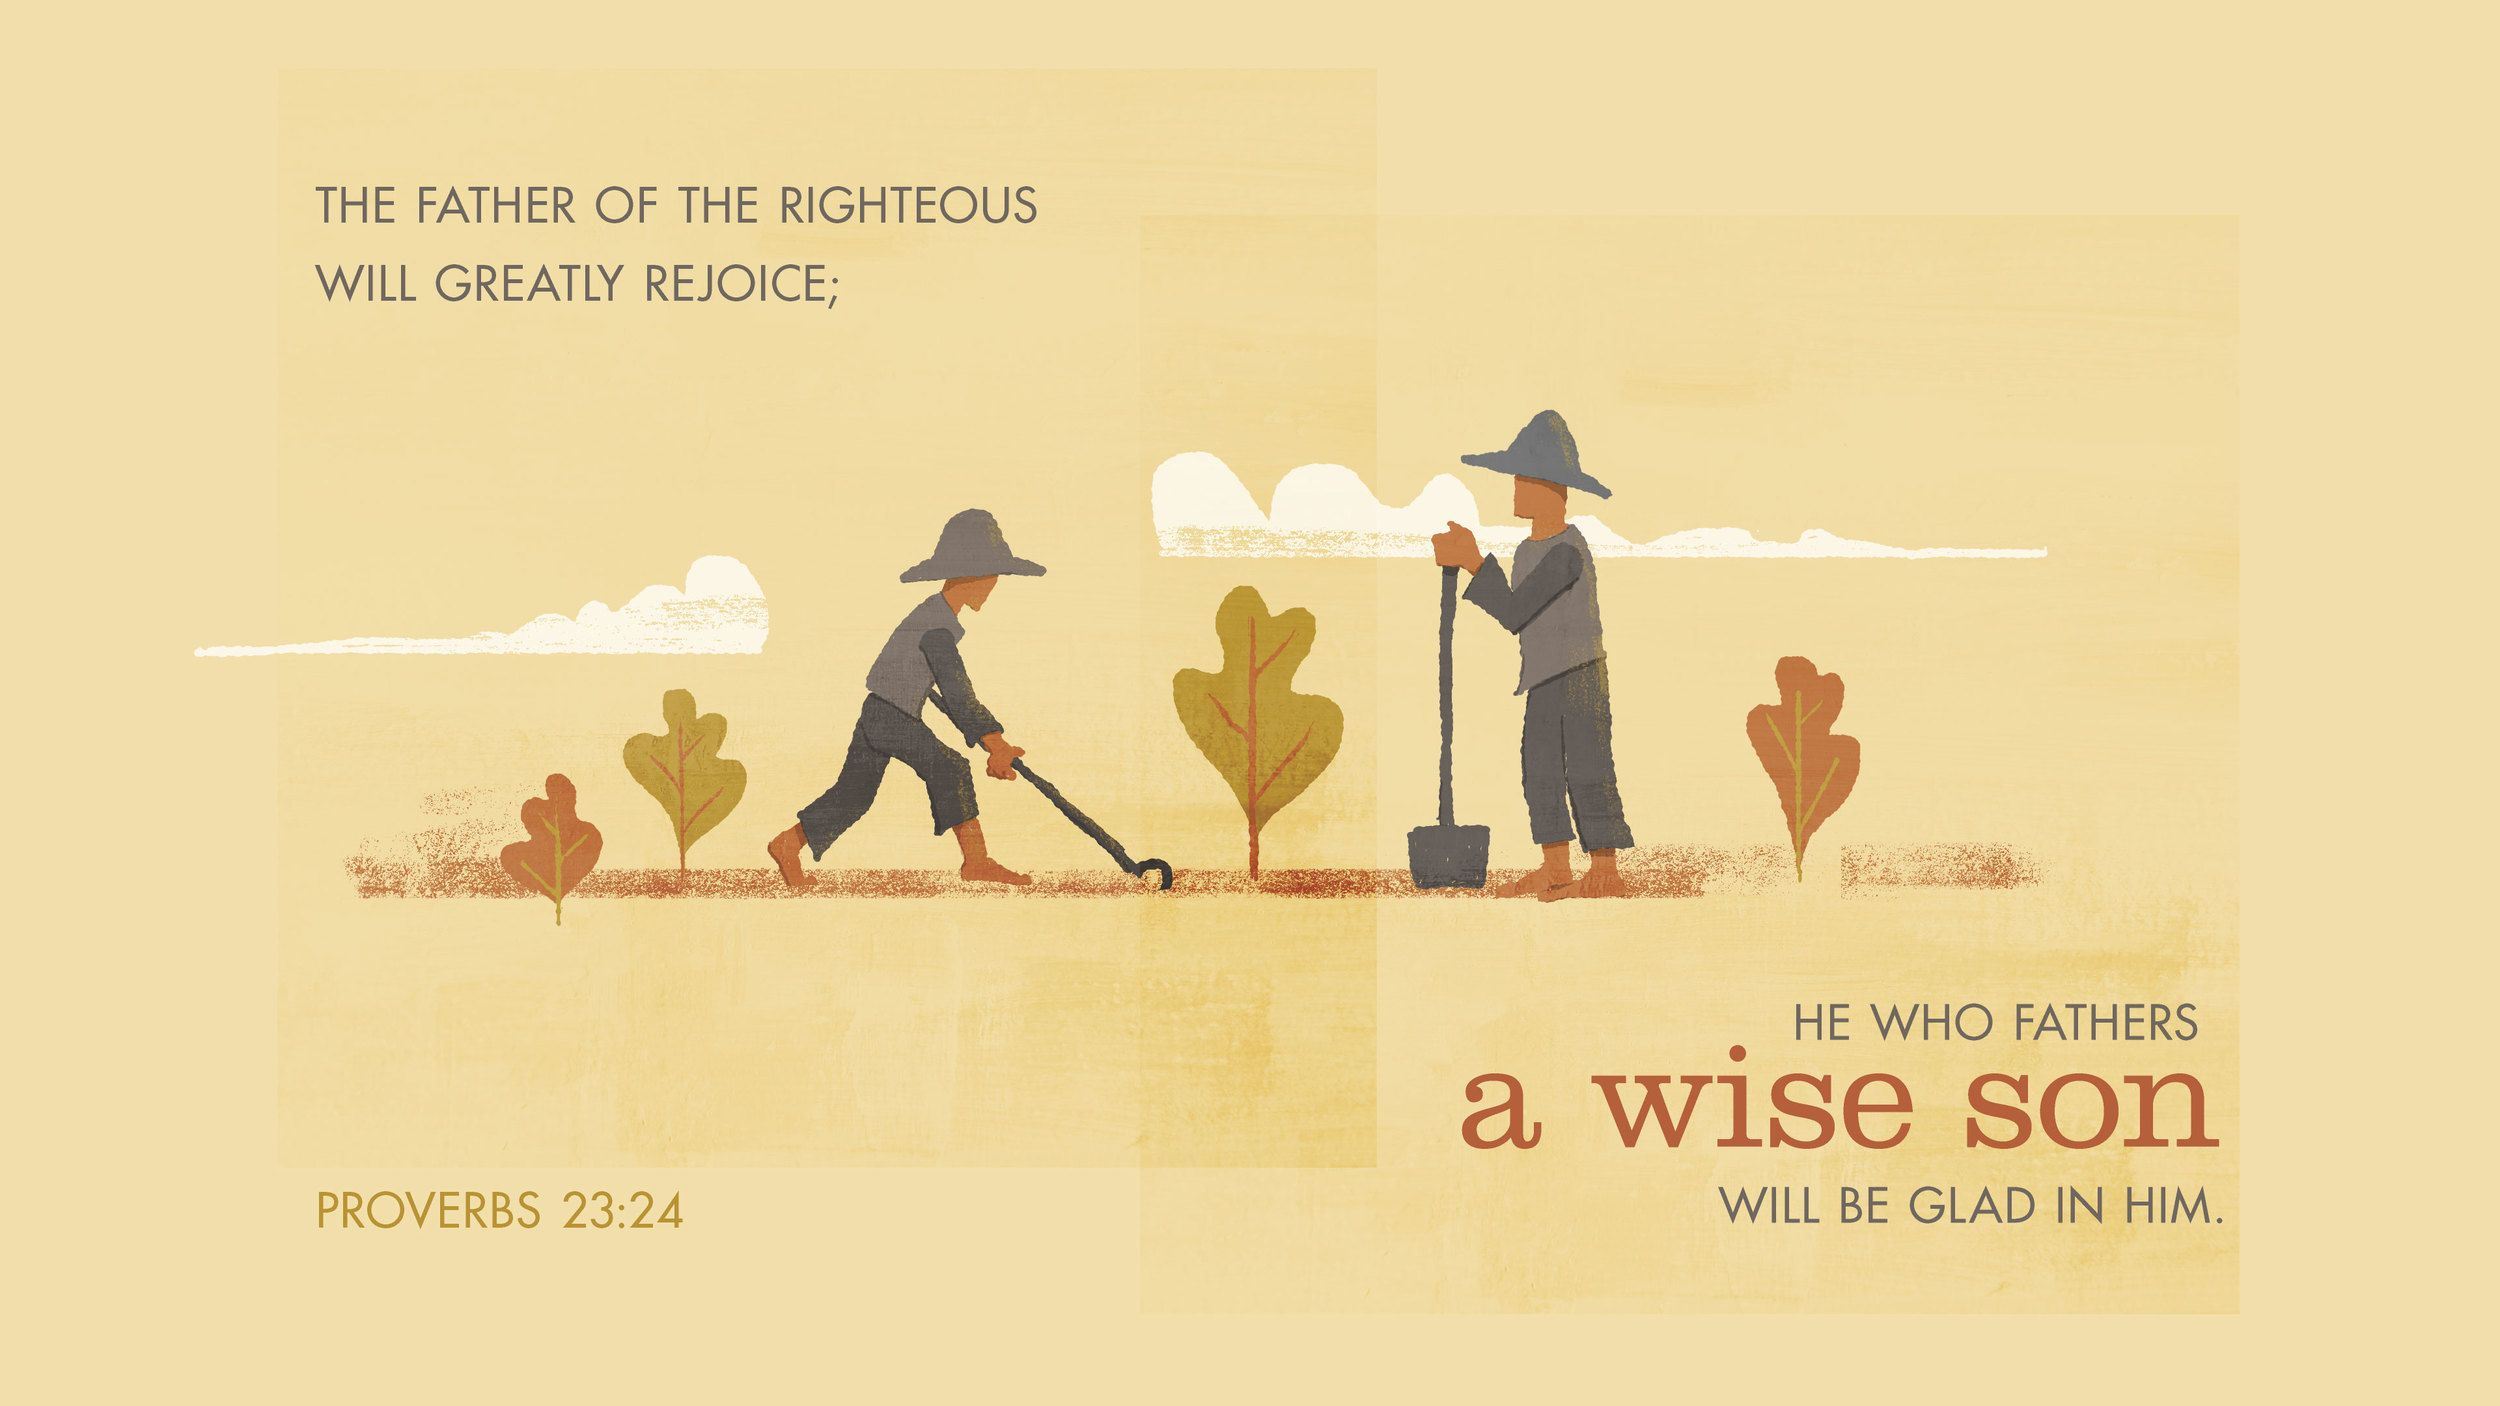 Wise Son by Fred Sprinkle http://www.fredsprinkle.com for http://www.logos.com